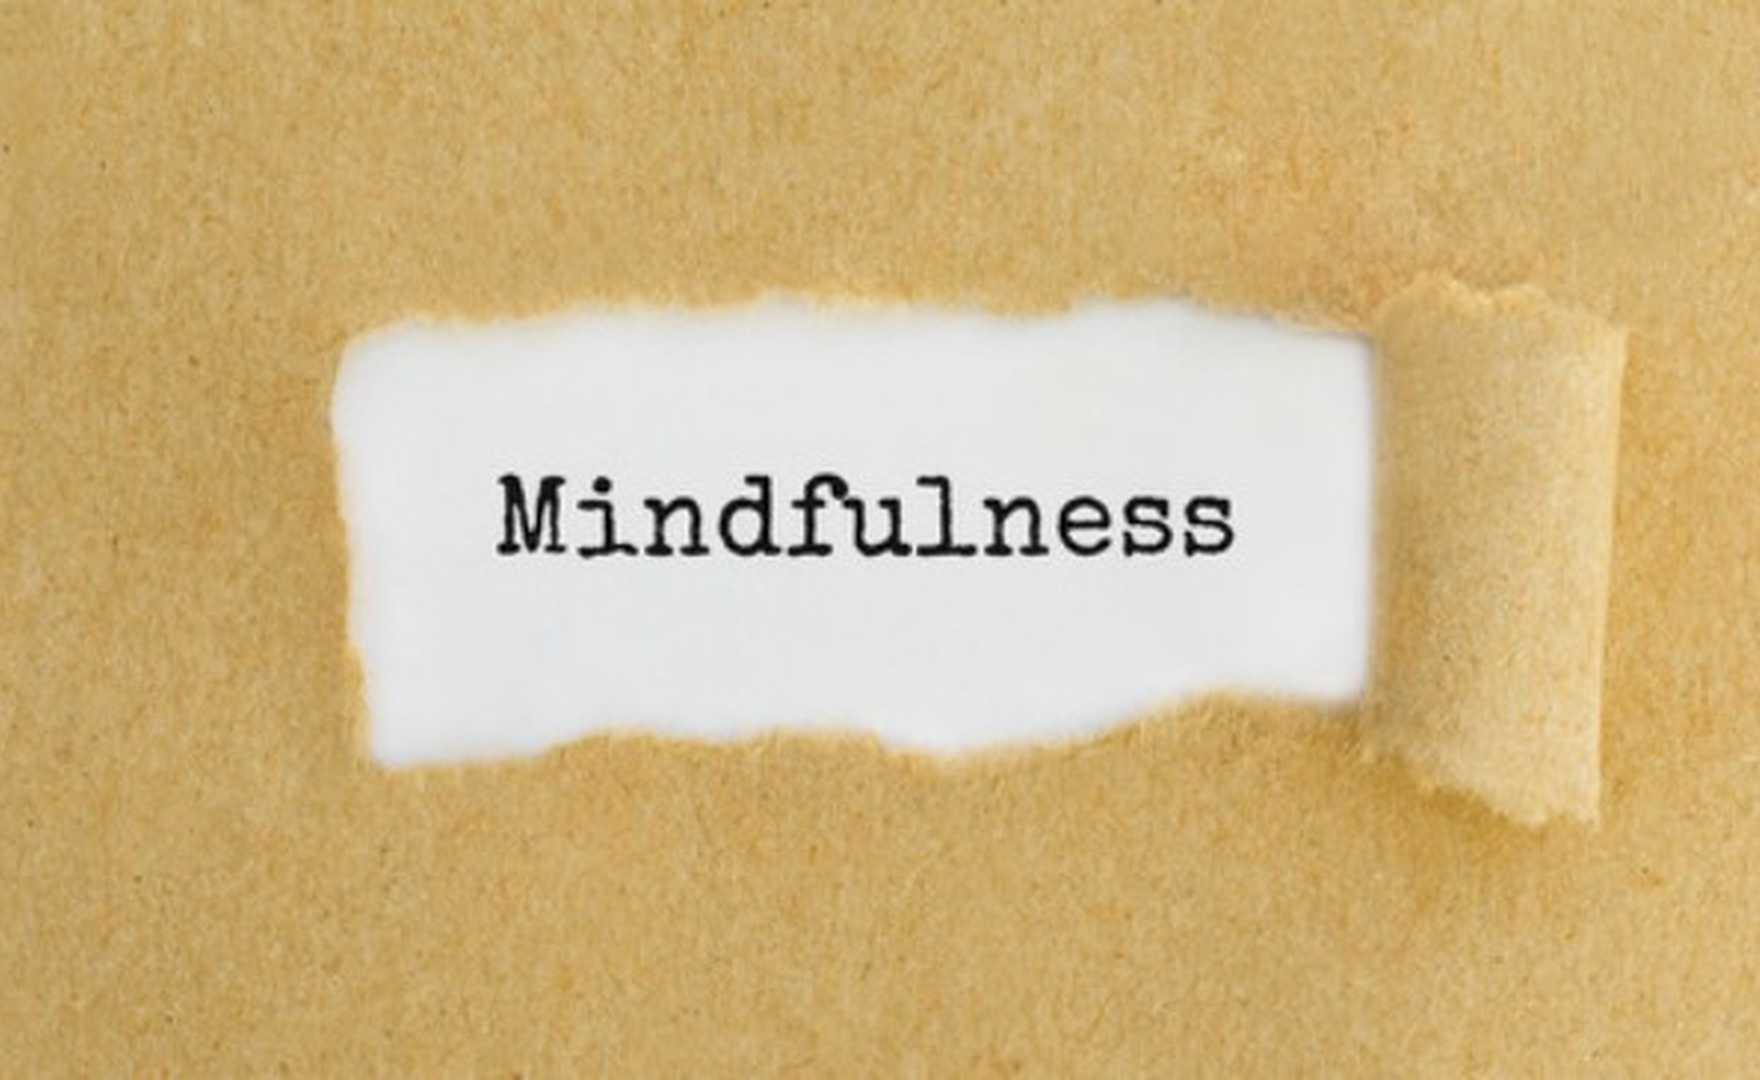 Mindfulness as a Frontline Intervention for Mental Health